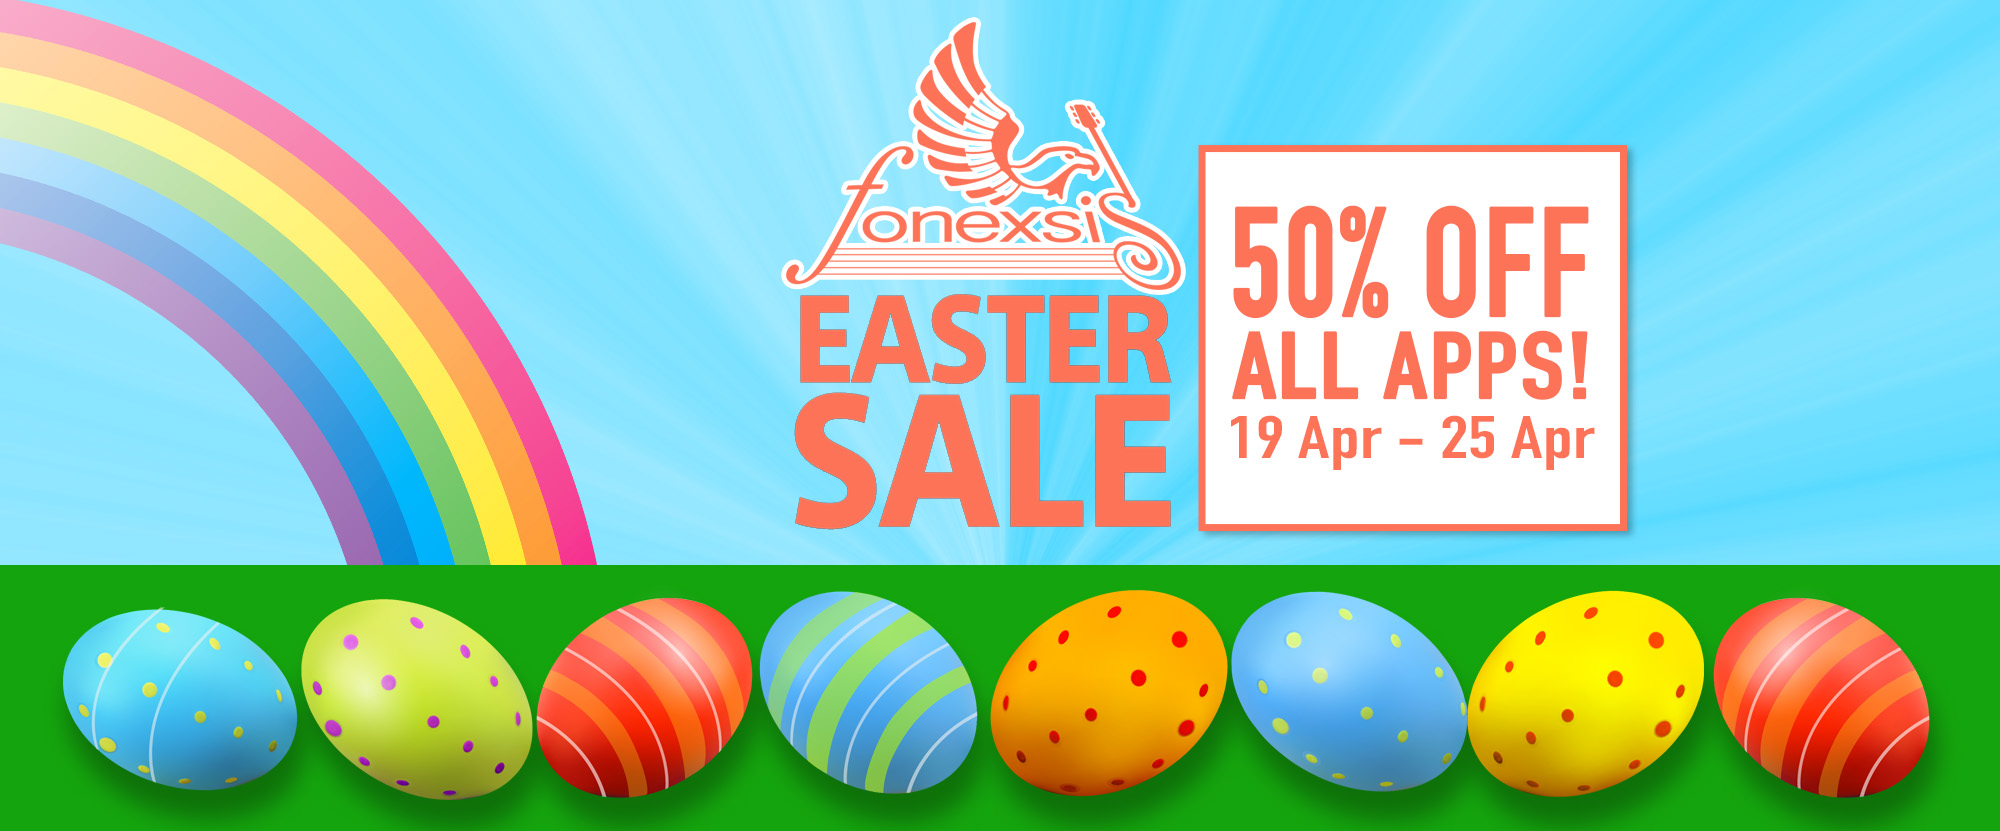 Easter Sale 50% OFF